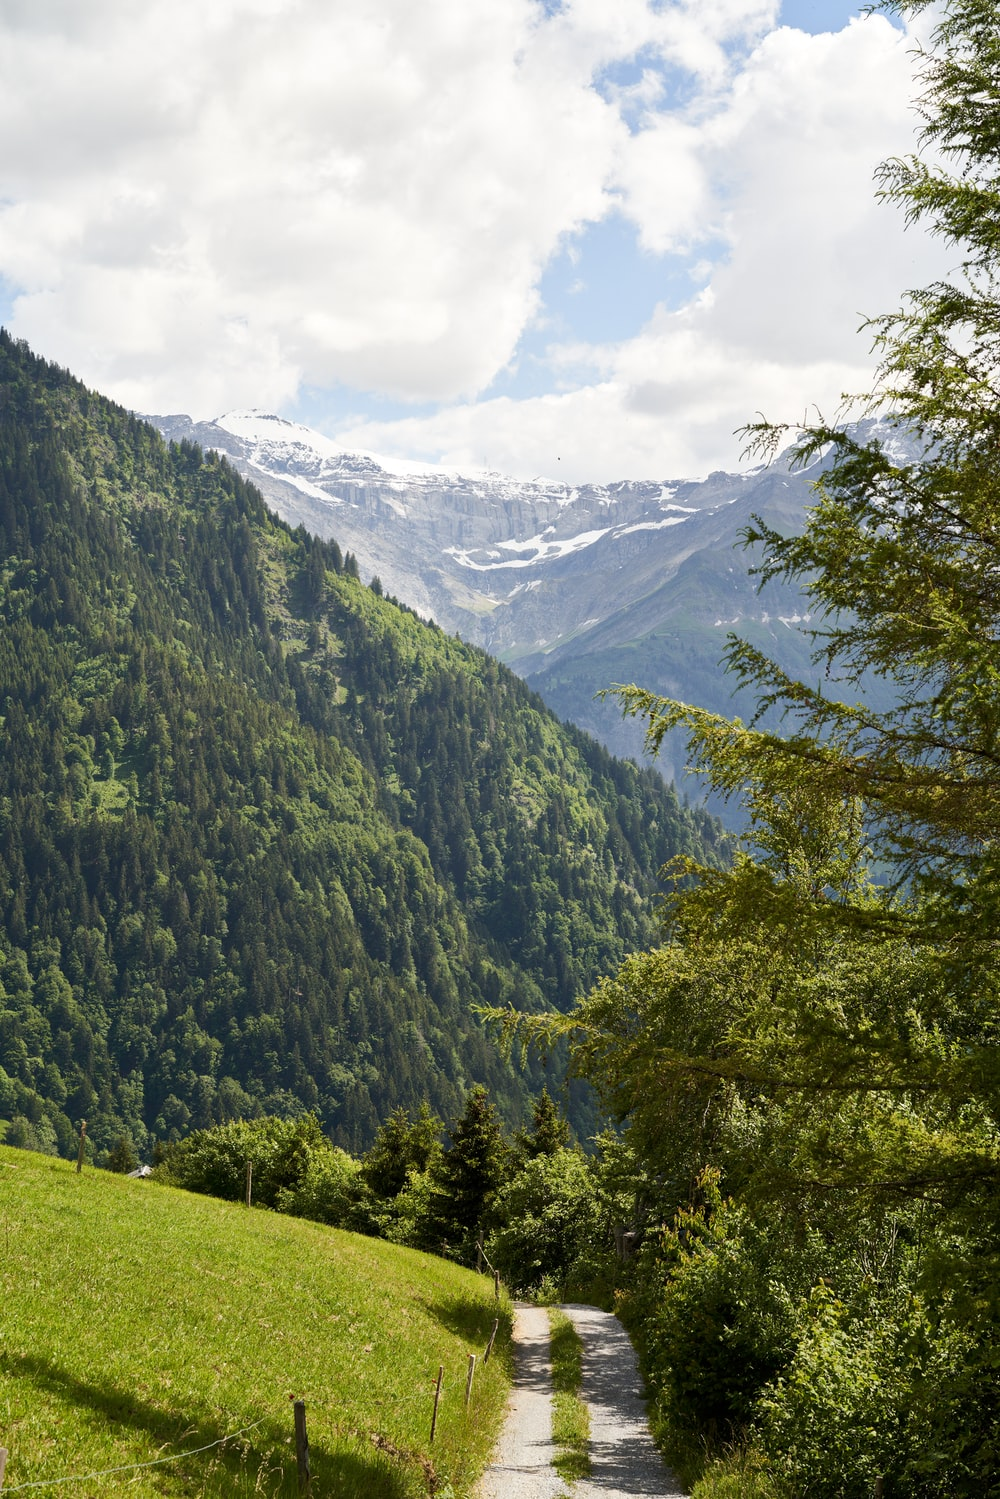 green trees on green grass field near mountain during daytime